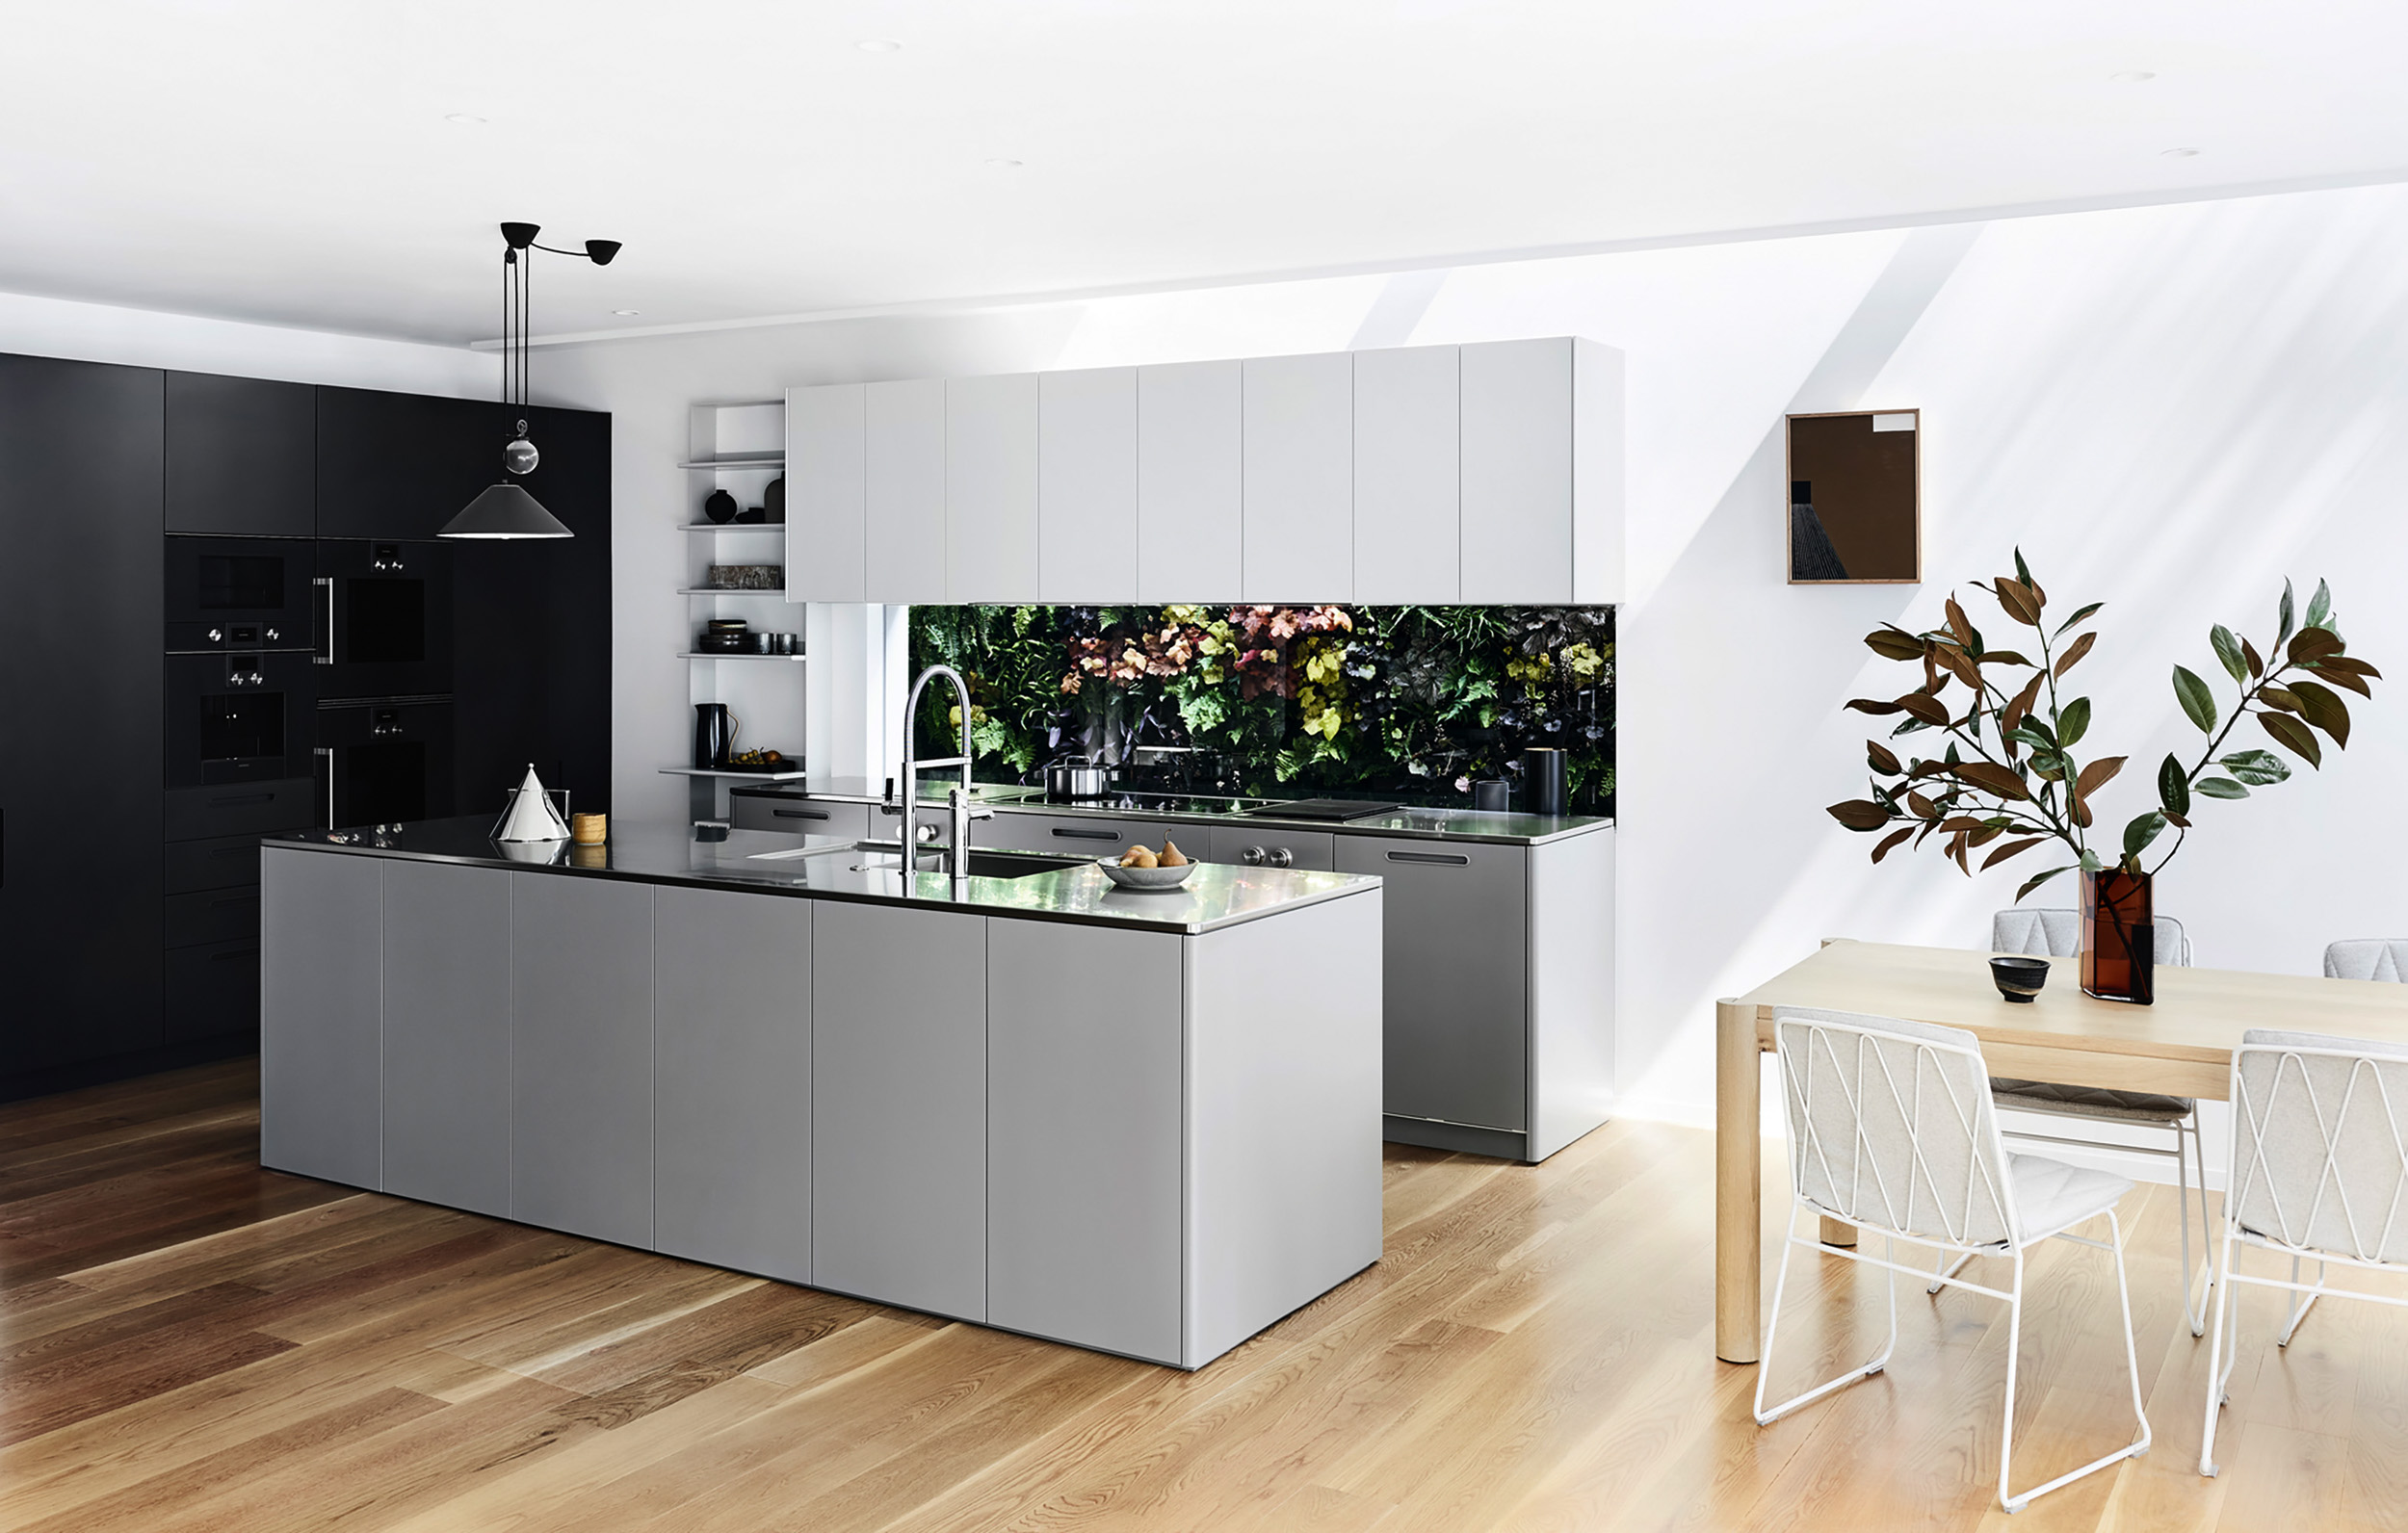 Tableau Kitchen System by Cantilever for Ross and Pauline Troon, Albert Park_1.JPG